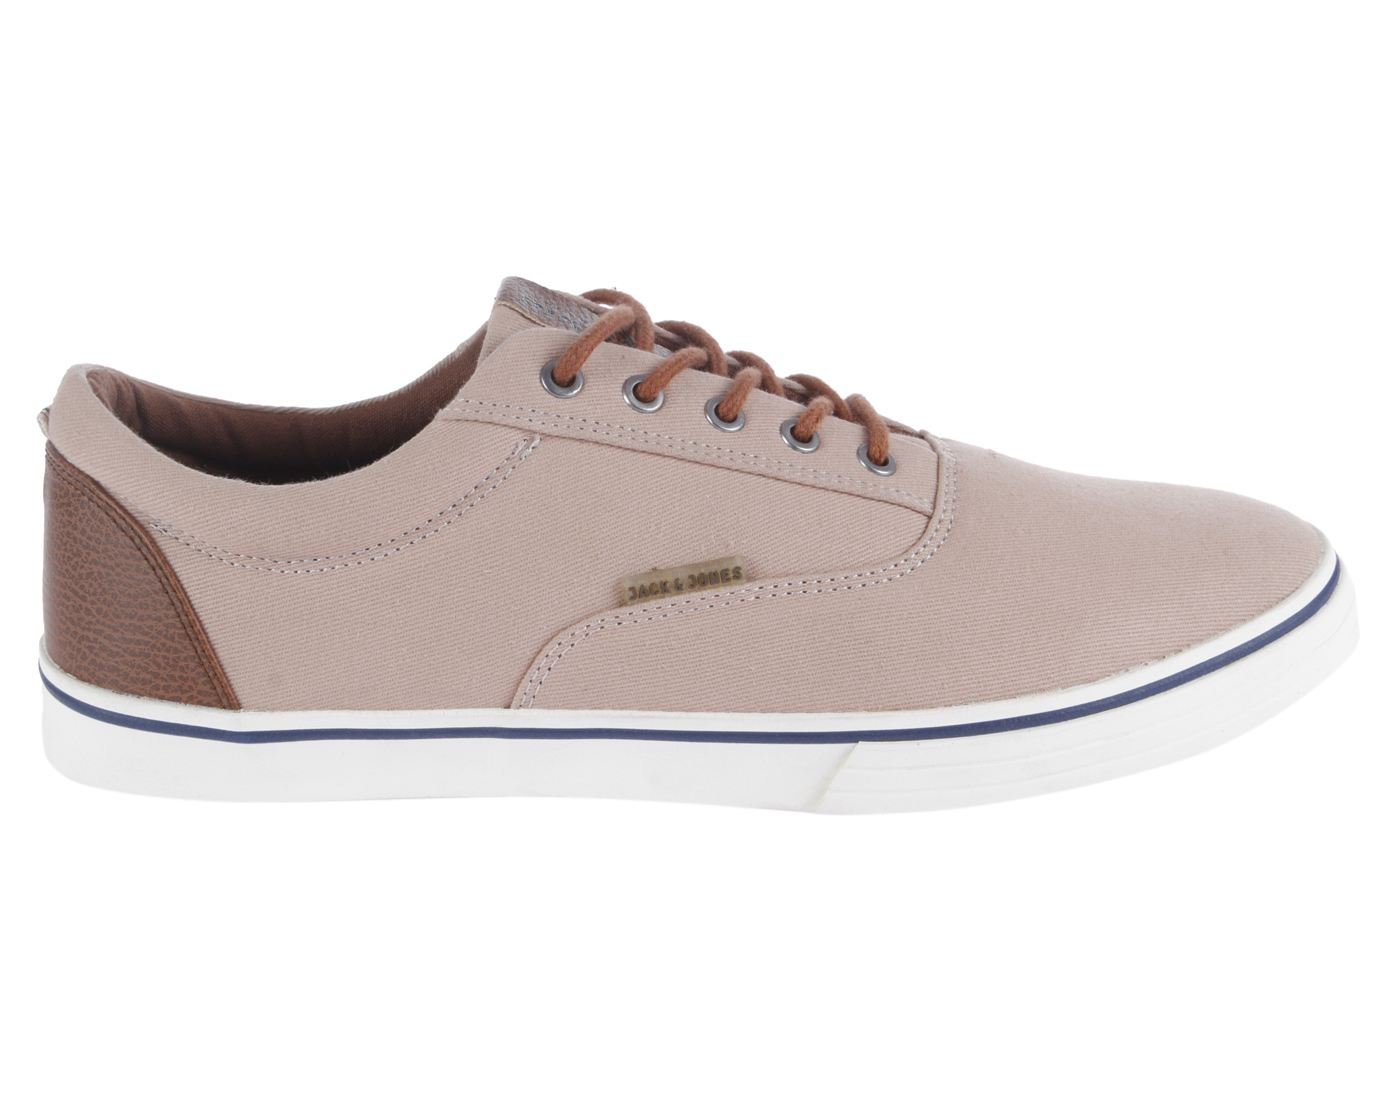 Jack & Jones Dusty Pink Leather  (Rubber Sole) Lace-up Sneakers